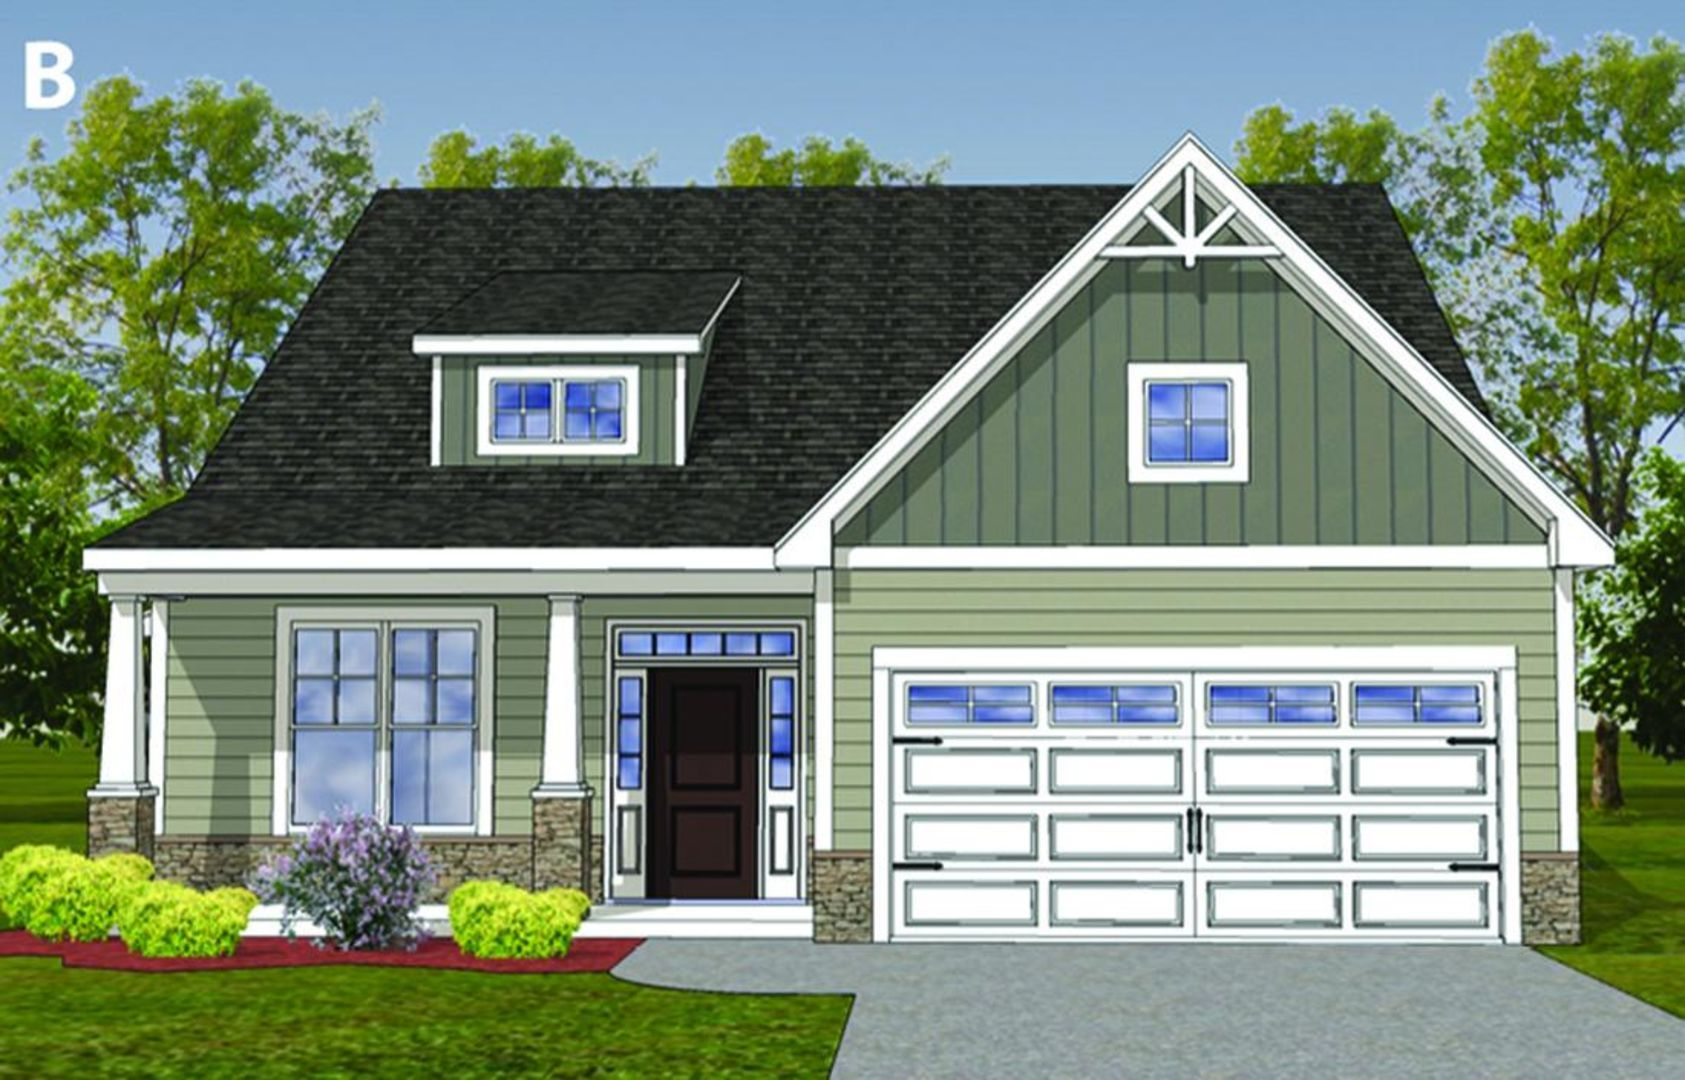 28376 New Construction Homes Plans 719 Homes Newhomesource